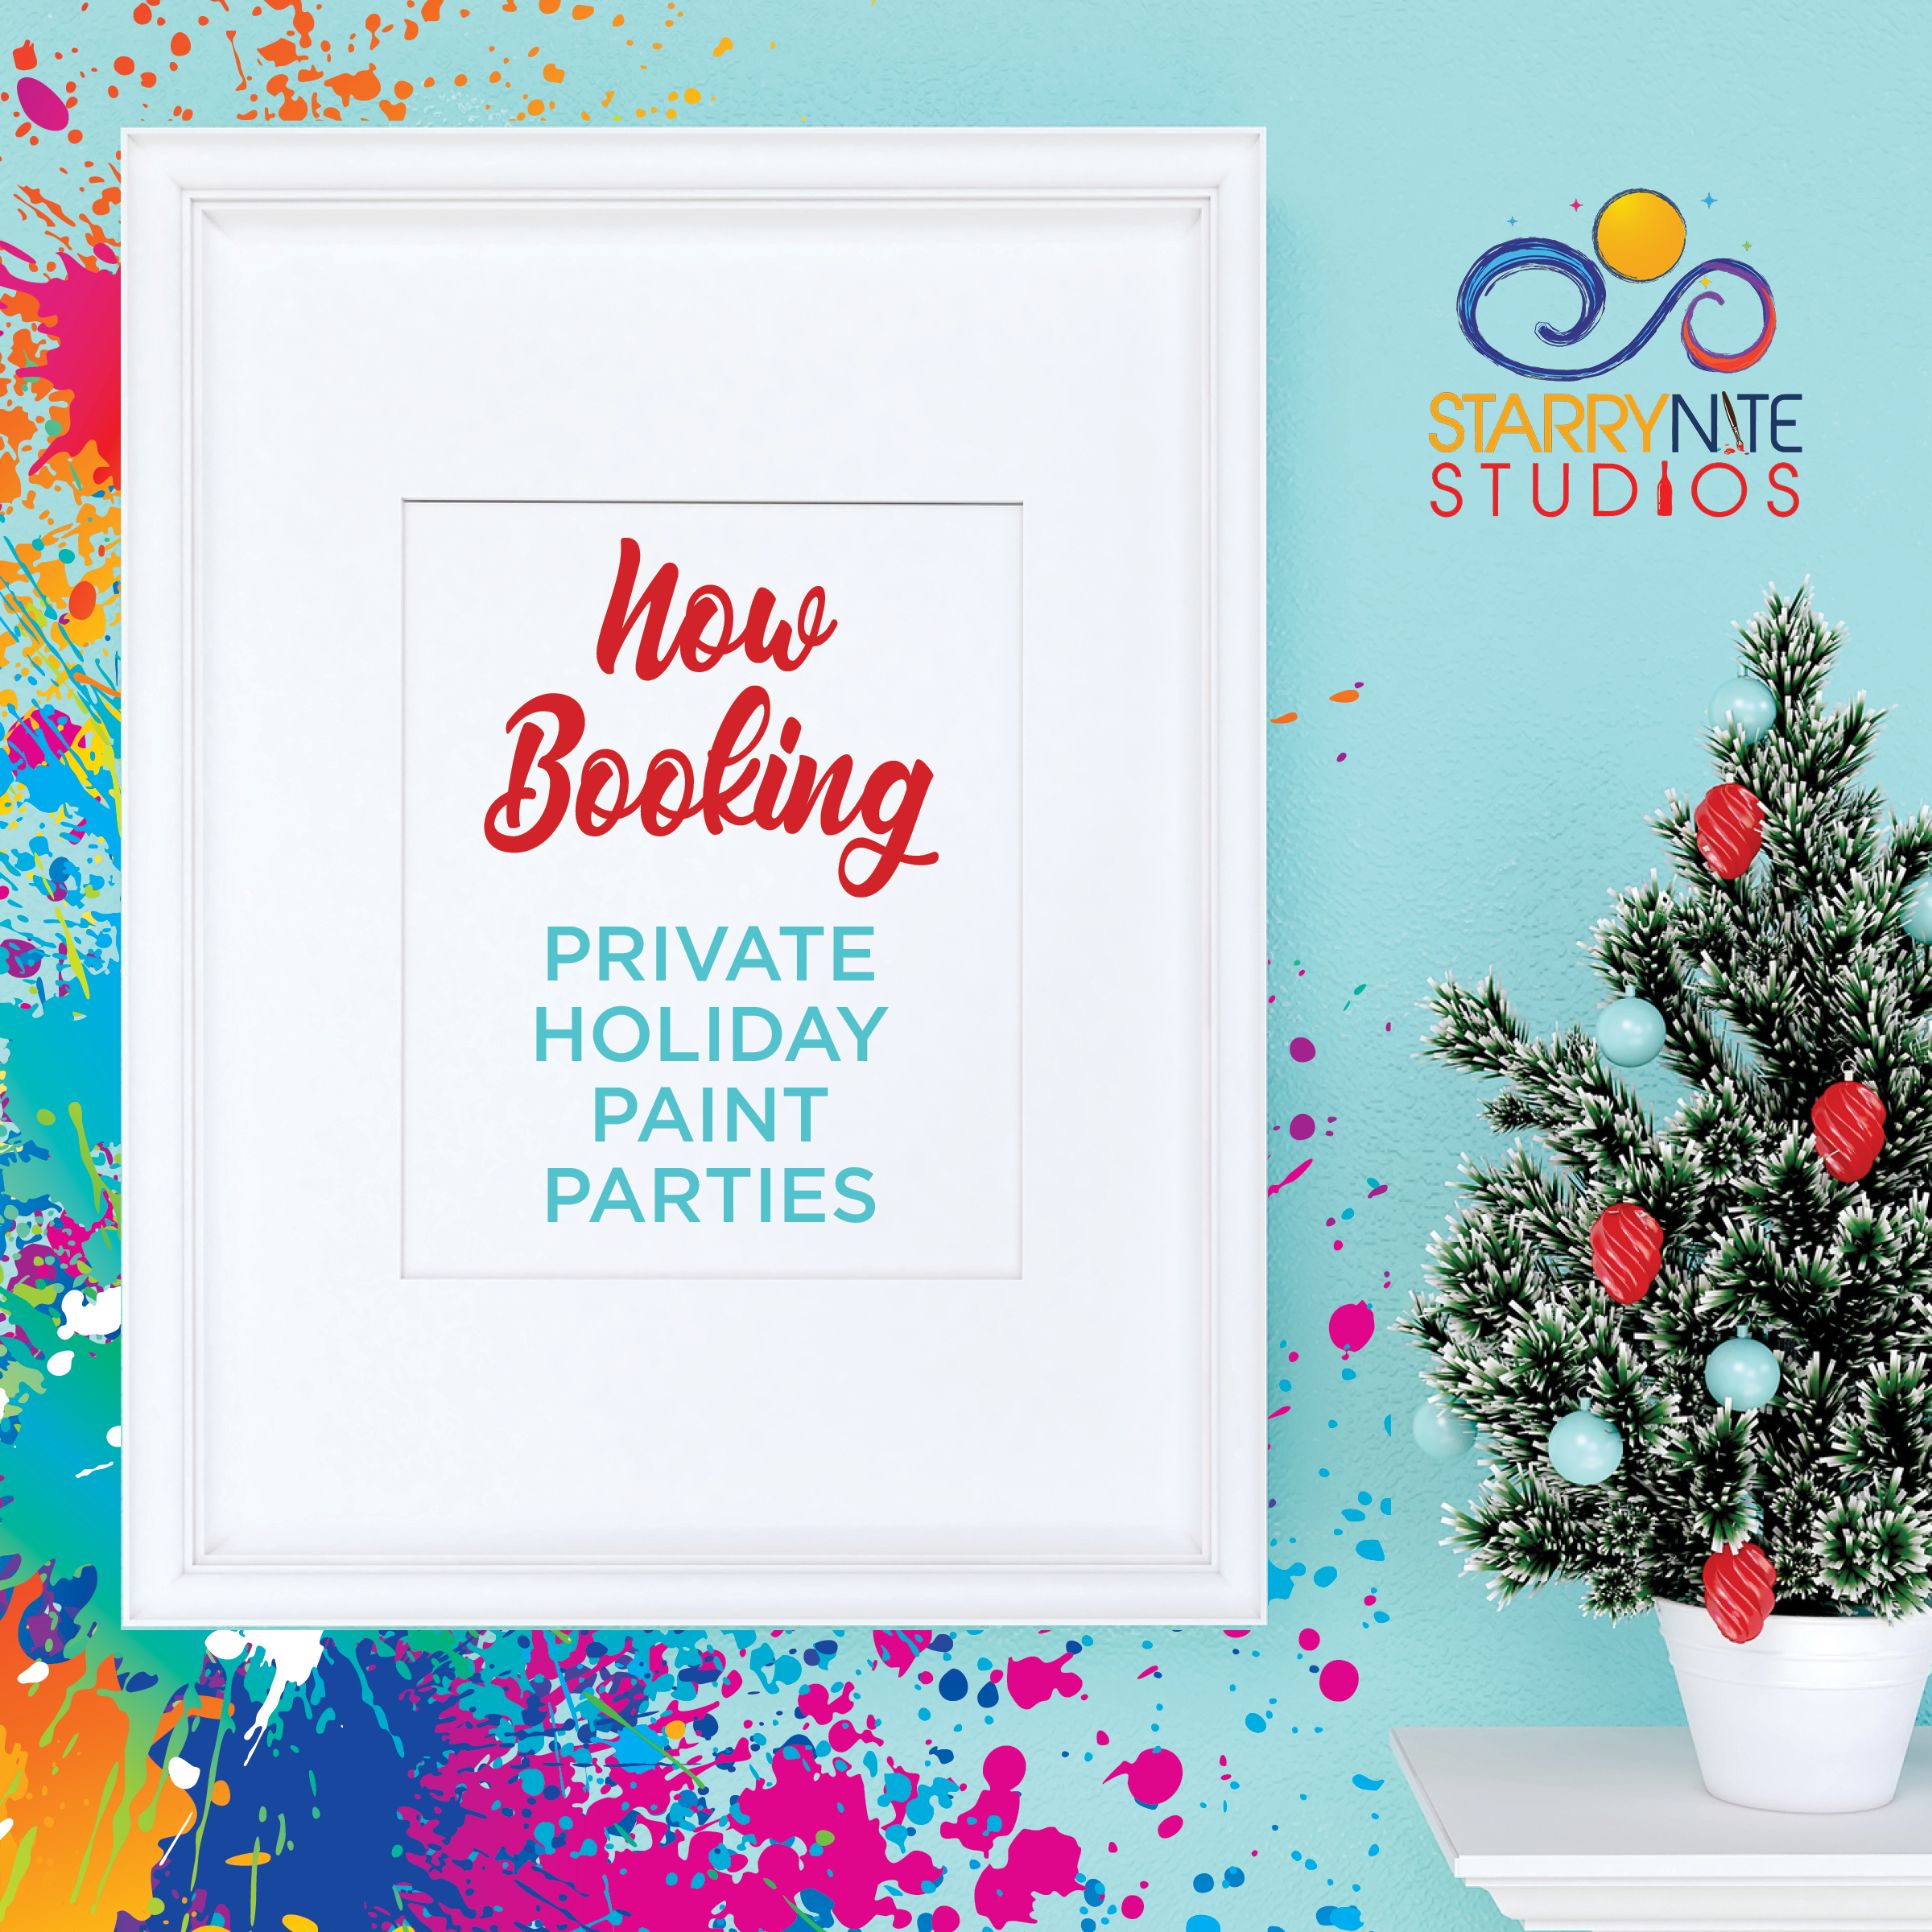 NOW BOOKING HOLIDAY PARTIES